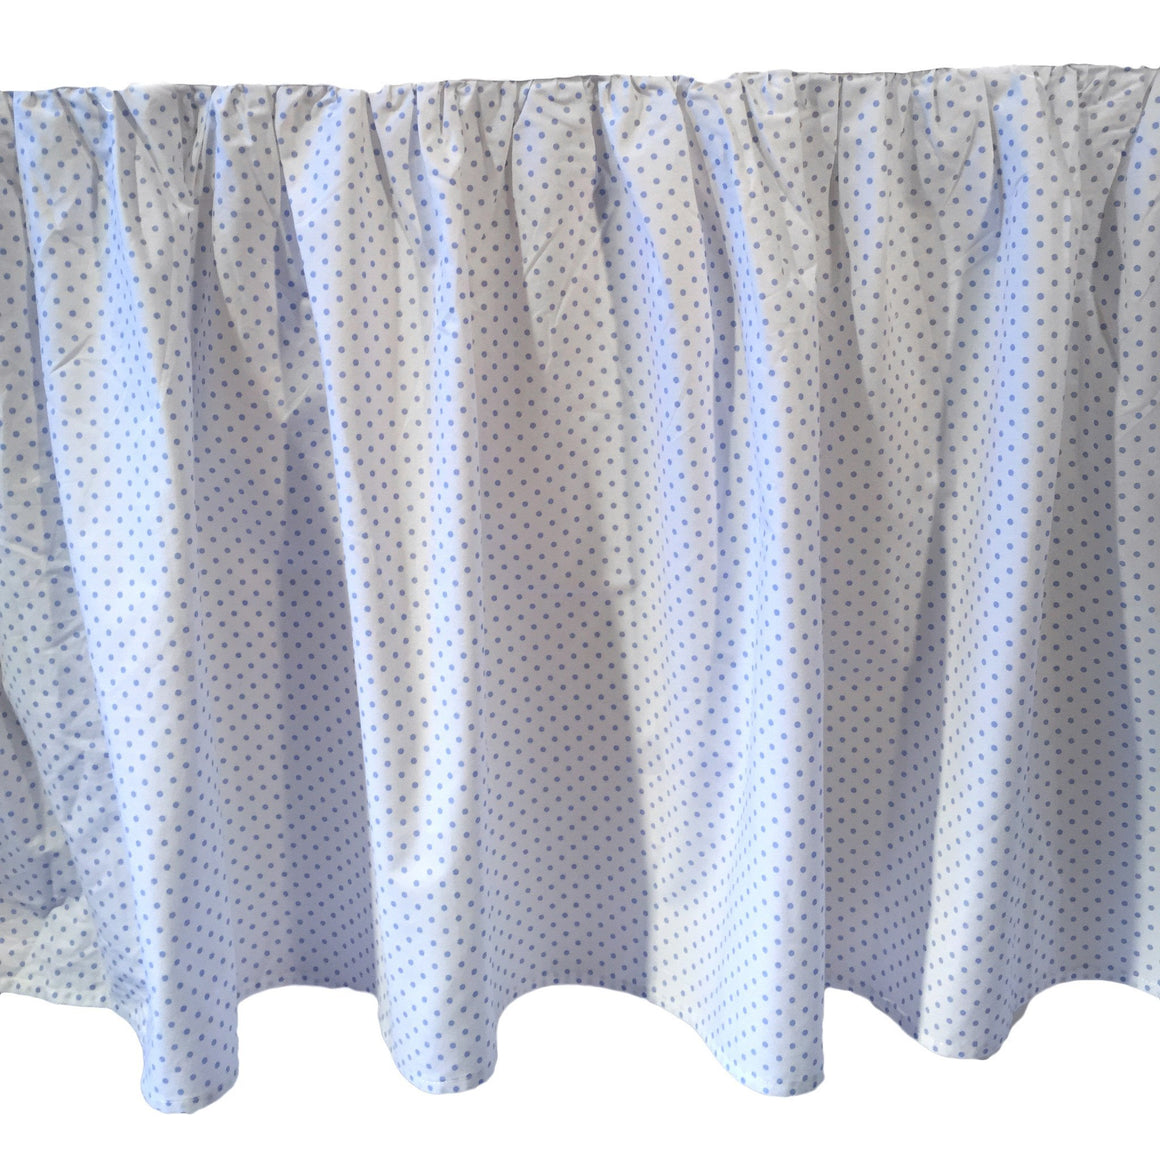 blue polka dot crib dust ruffle